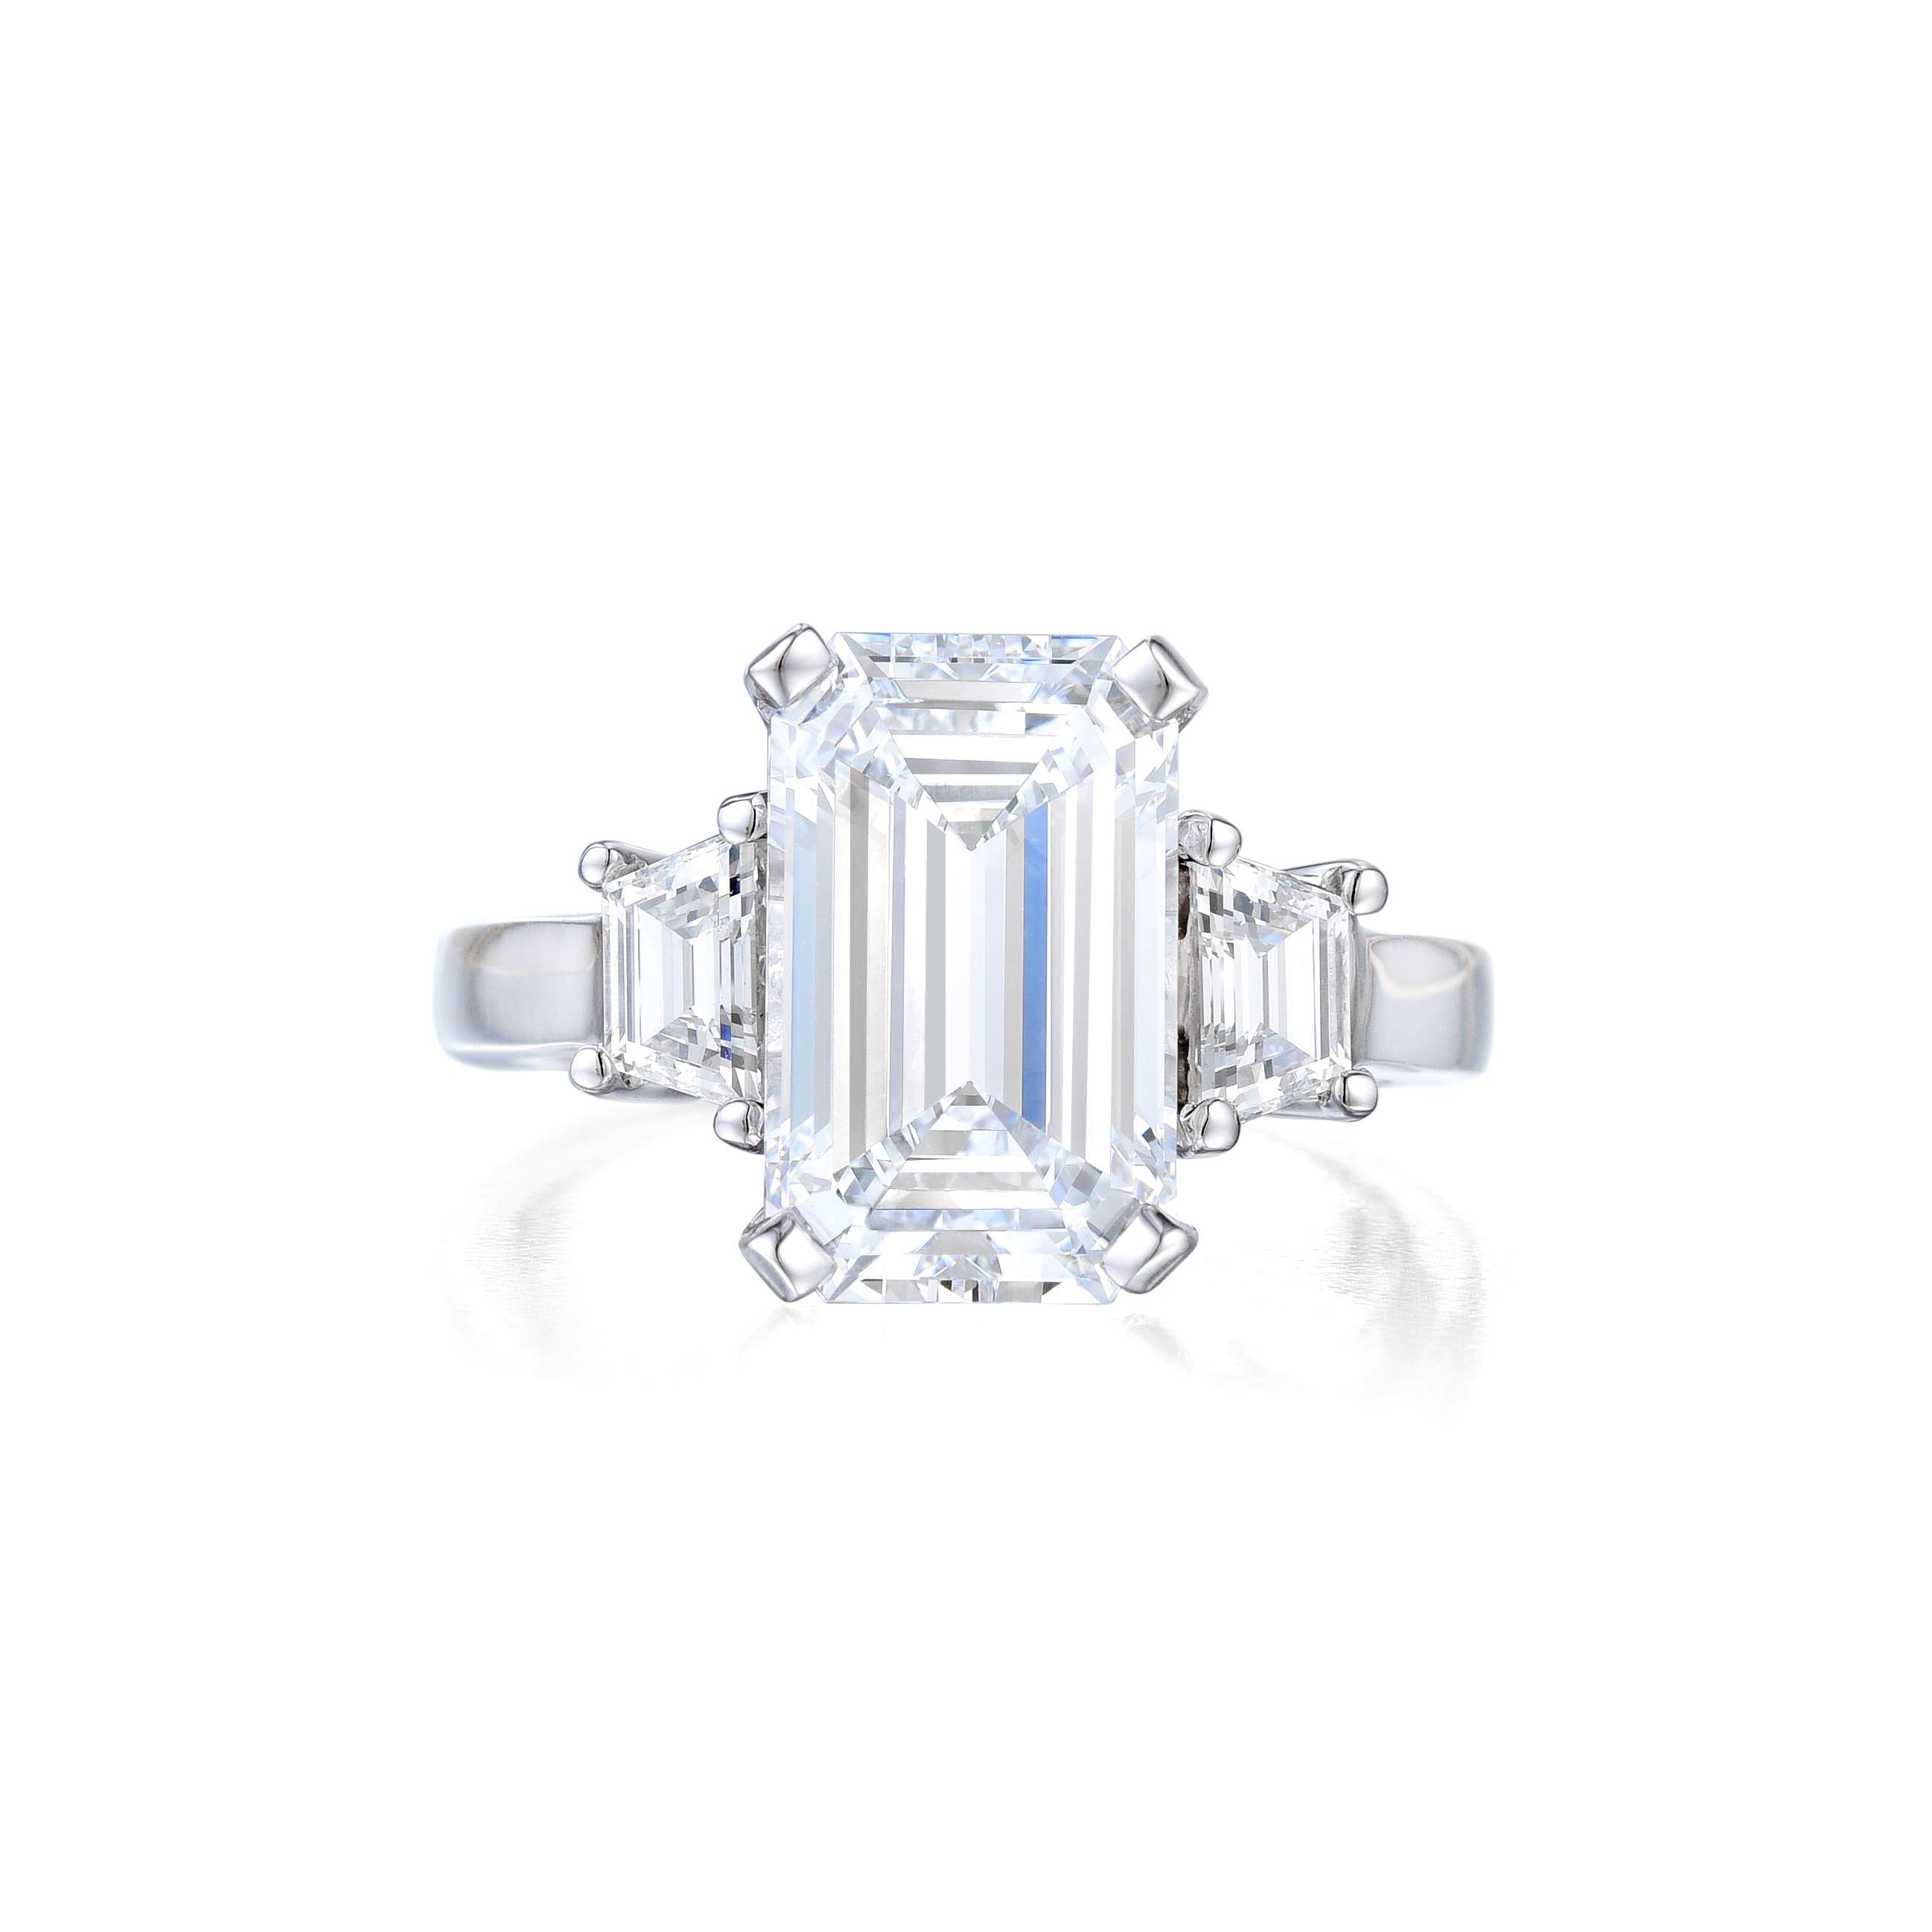 A 5.01ct D IF Emerald-Cut Diamond Ring